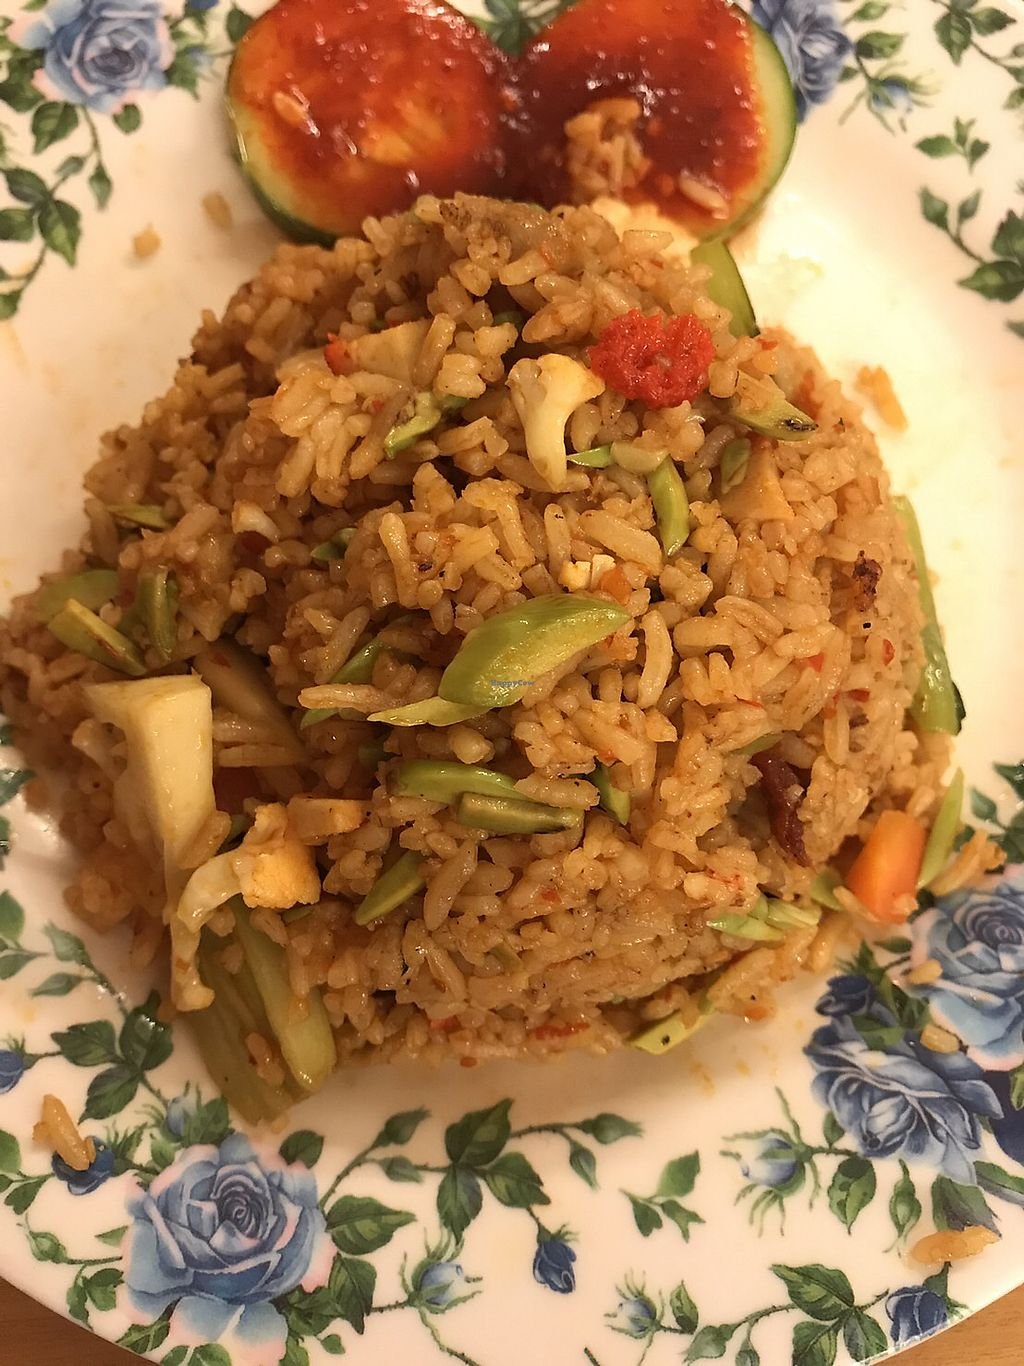 """Photo of Puspamalar Food Corner  by <a href=""""/members/profile/Zerthis"""">Zerthis</a> <br/>Petai Fried Rice <br/> November 30, 2017  - <a href='/contact/abuse/image/3811/330875'>Report</a>"""